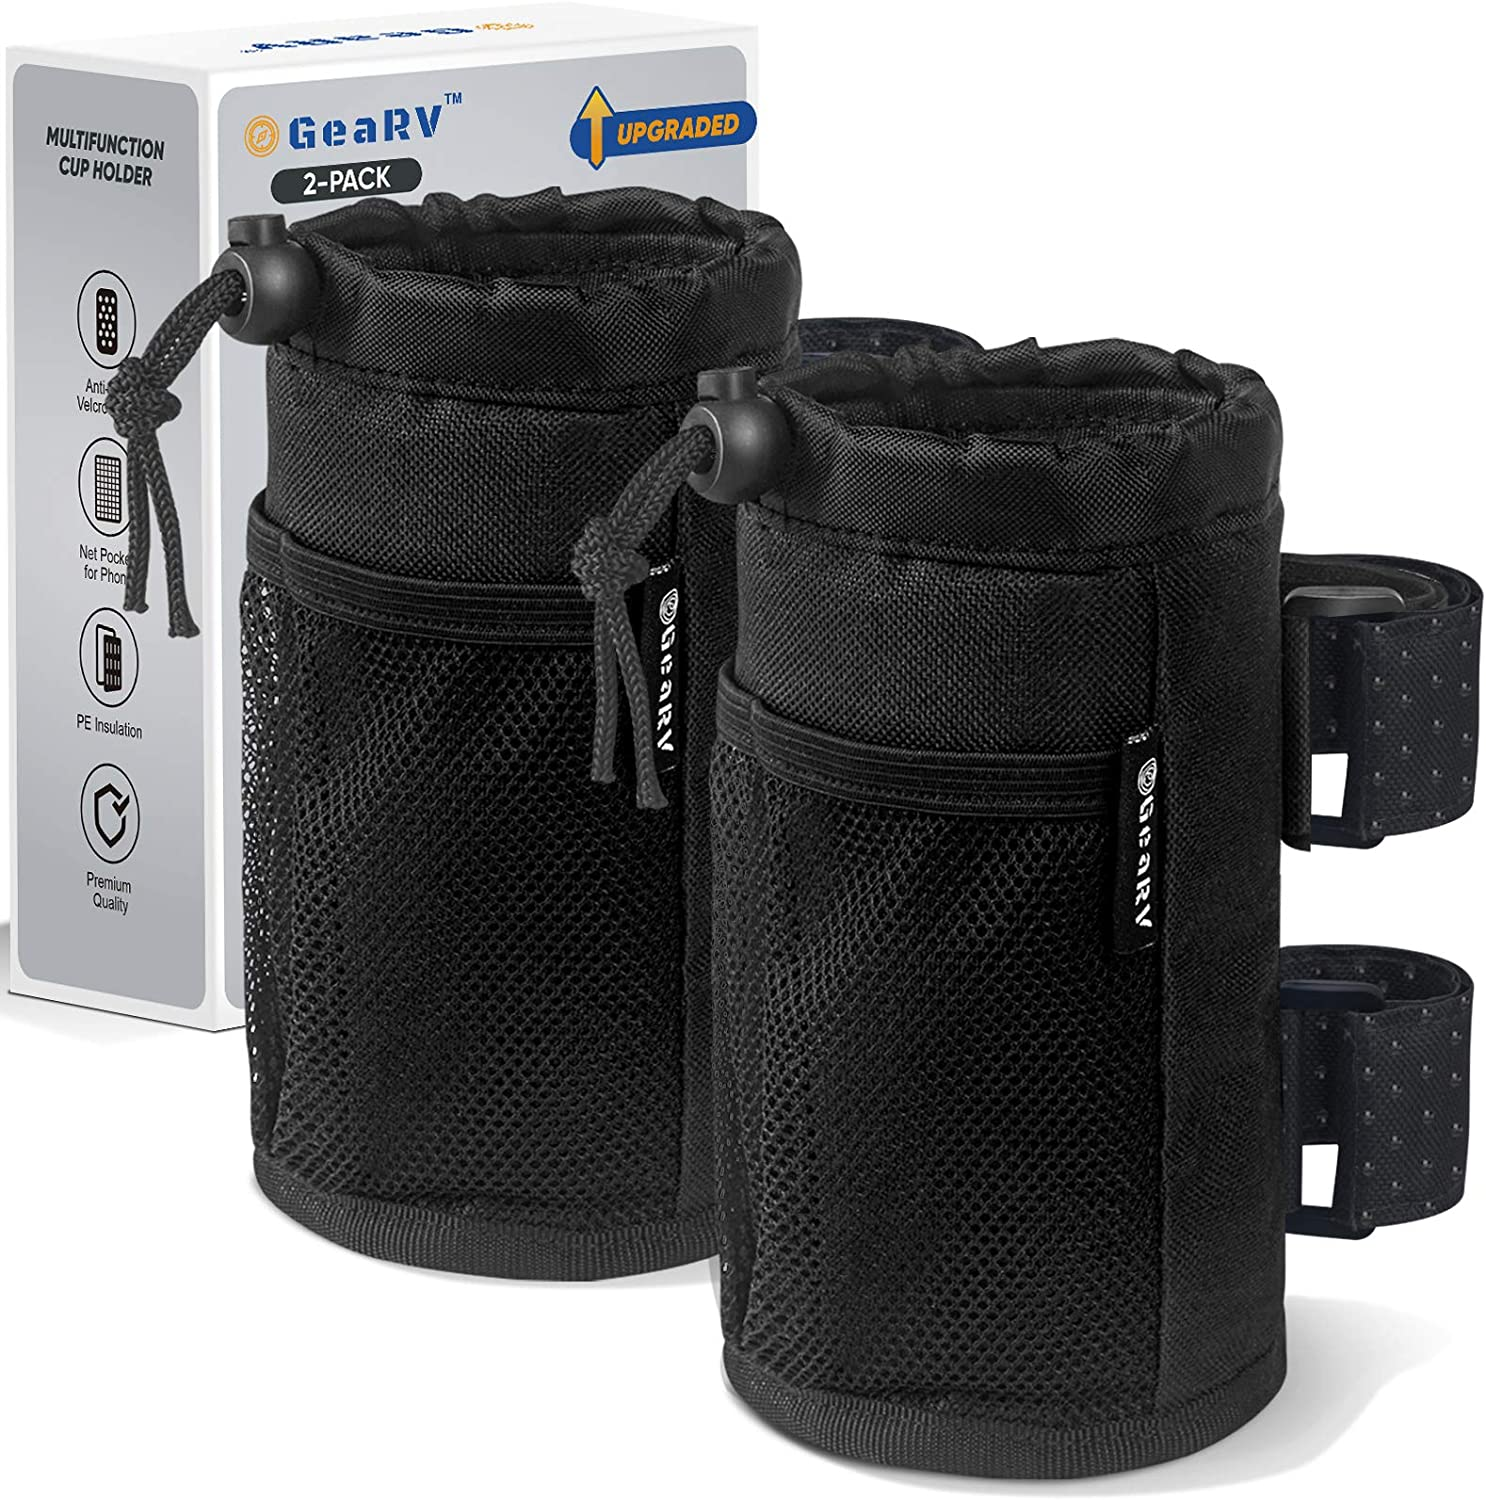 GEARV 2Pack Cup Holder for Bike Ranking Dealing full price reduction TOP9 and Scooter Wheelchair B Water